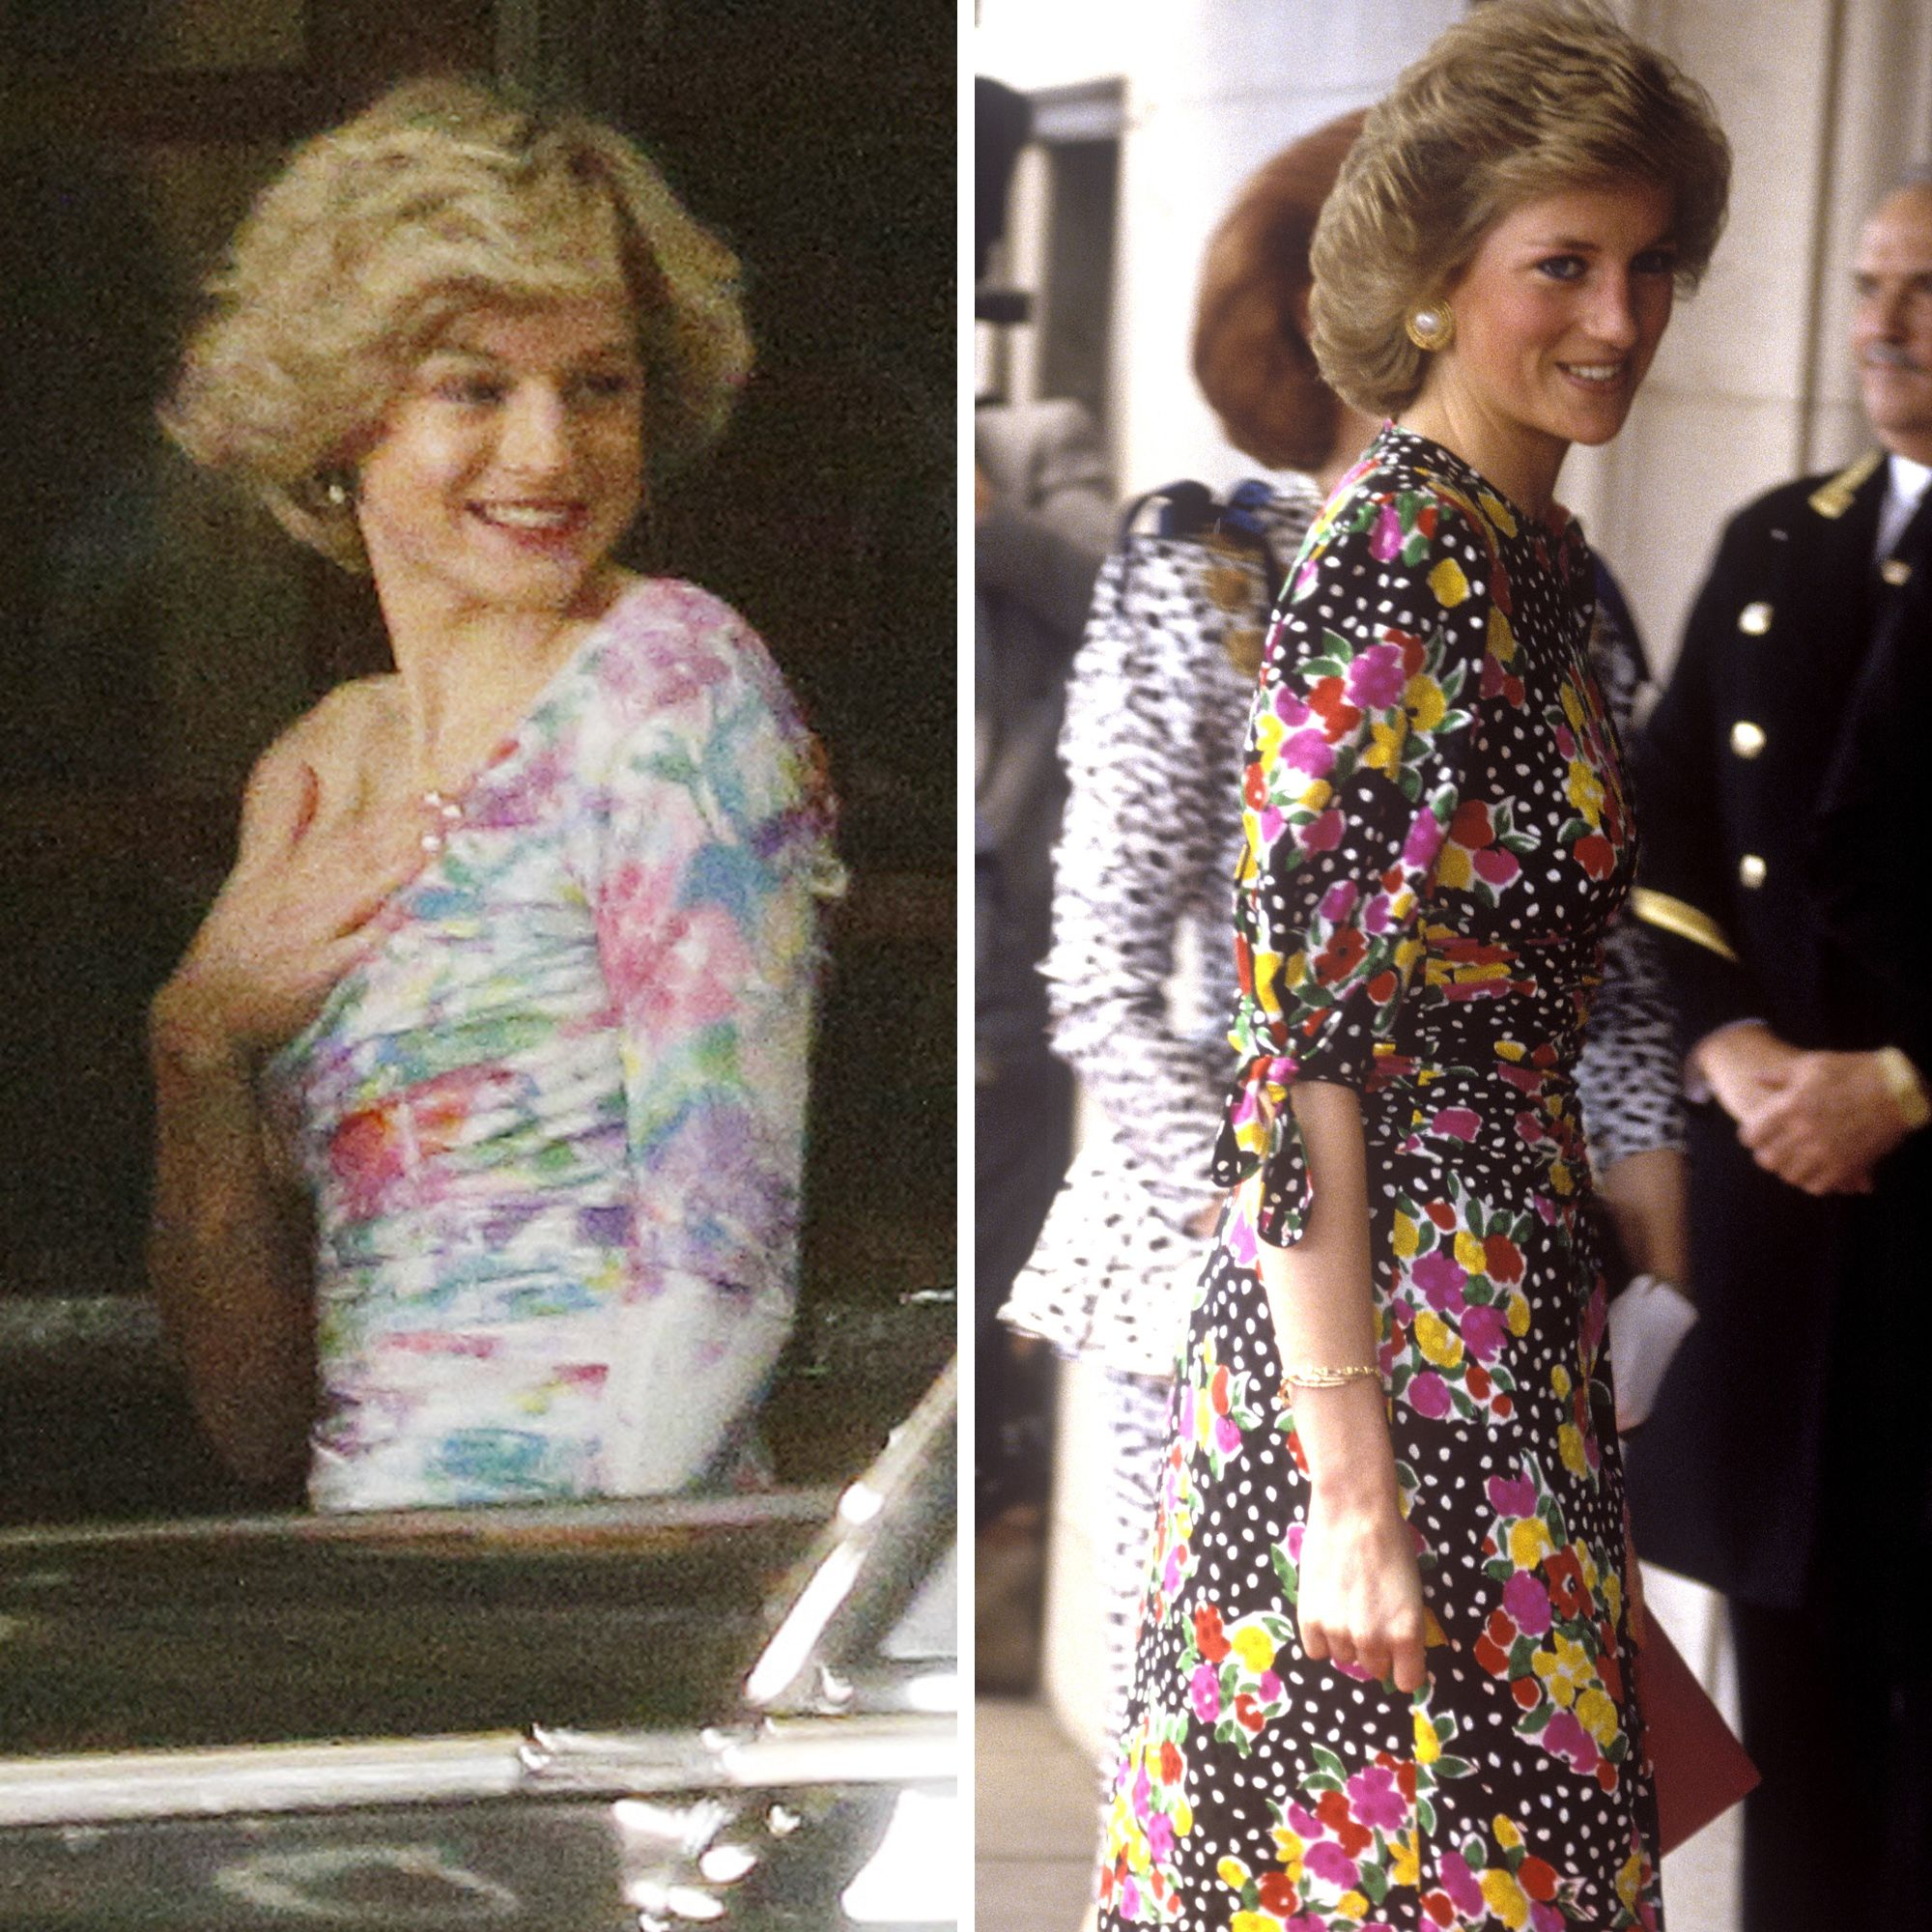 The Crown Recreates Princess Diana's Visit to the Savoy Hotel